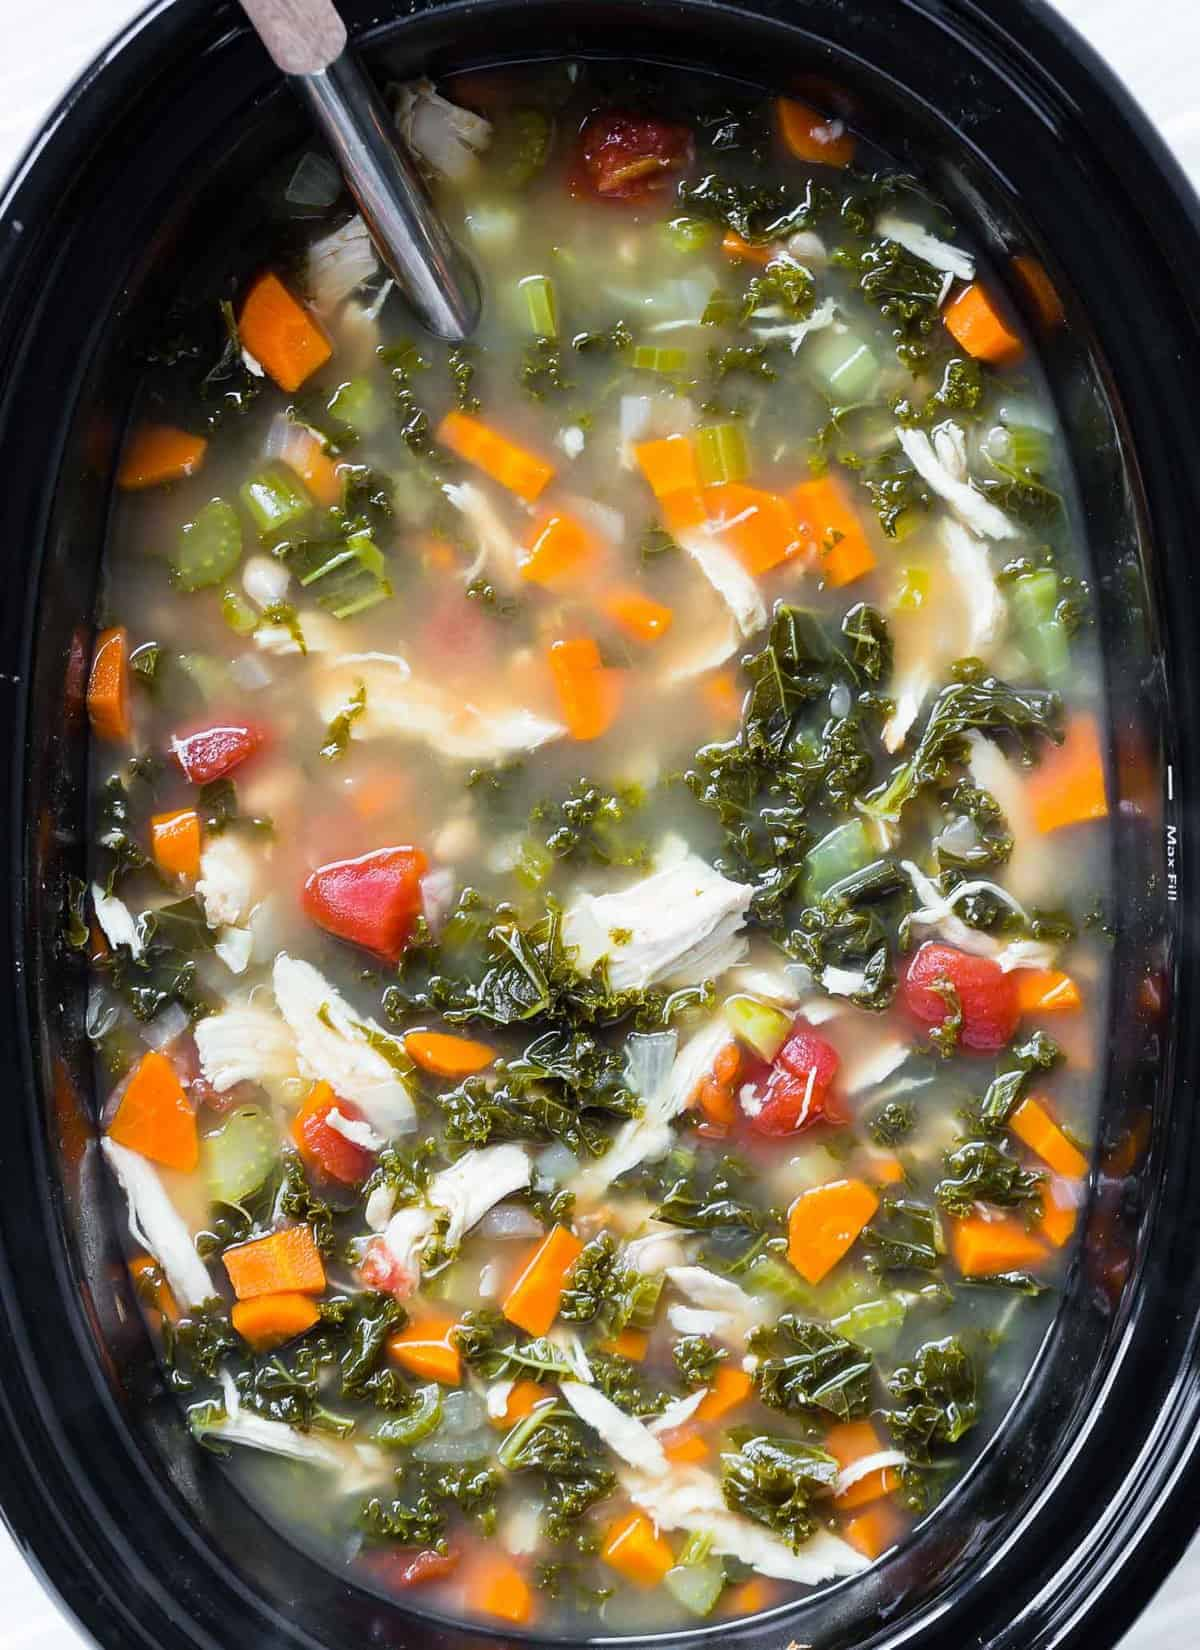 Healthy soup in a slow cooker with a ladle.